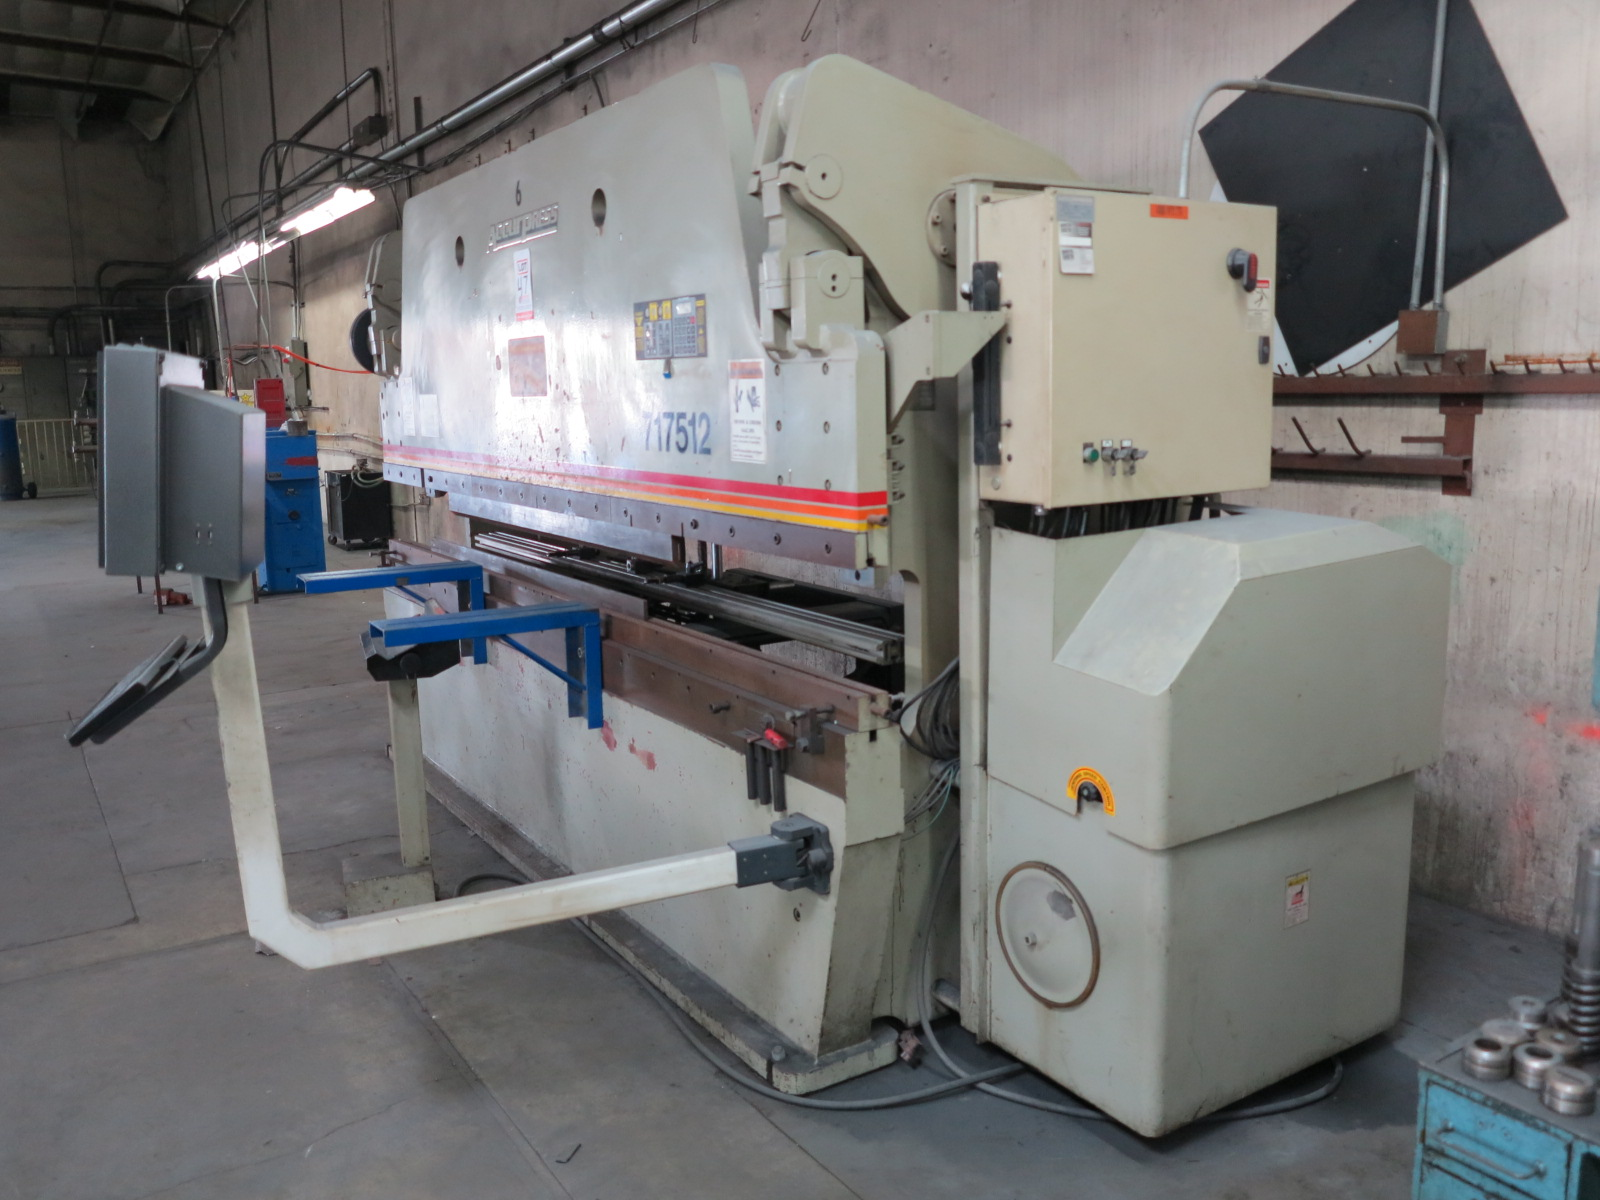 1999 ACCURPRESS BRAKE, MODEL 7017512, 175-TON X 12', E&S CONTROL, CNC BACKGAUGE, SUPPORTS, S/N 5758 - Image 7 of 7